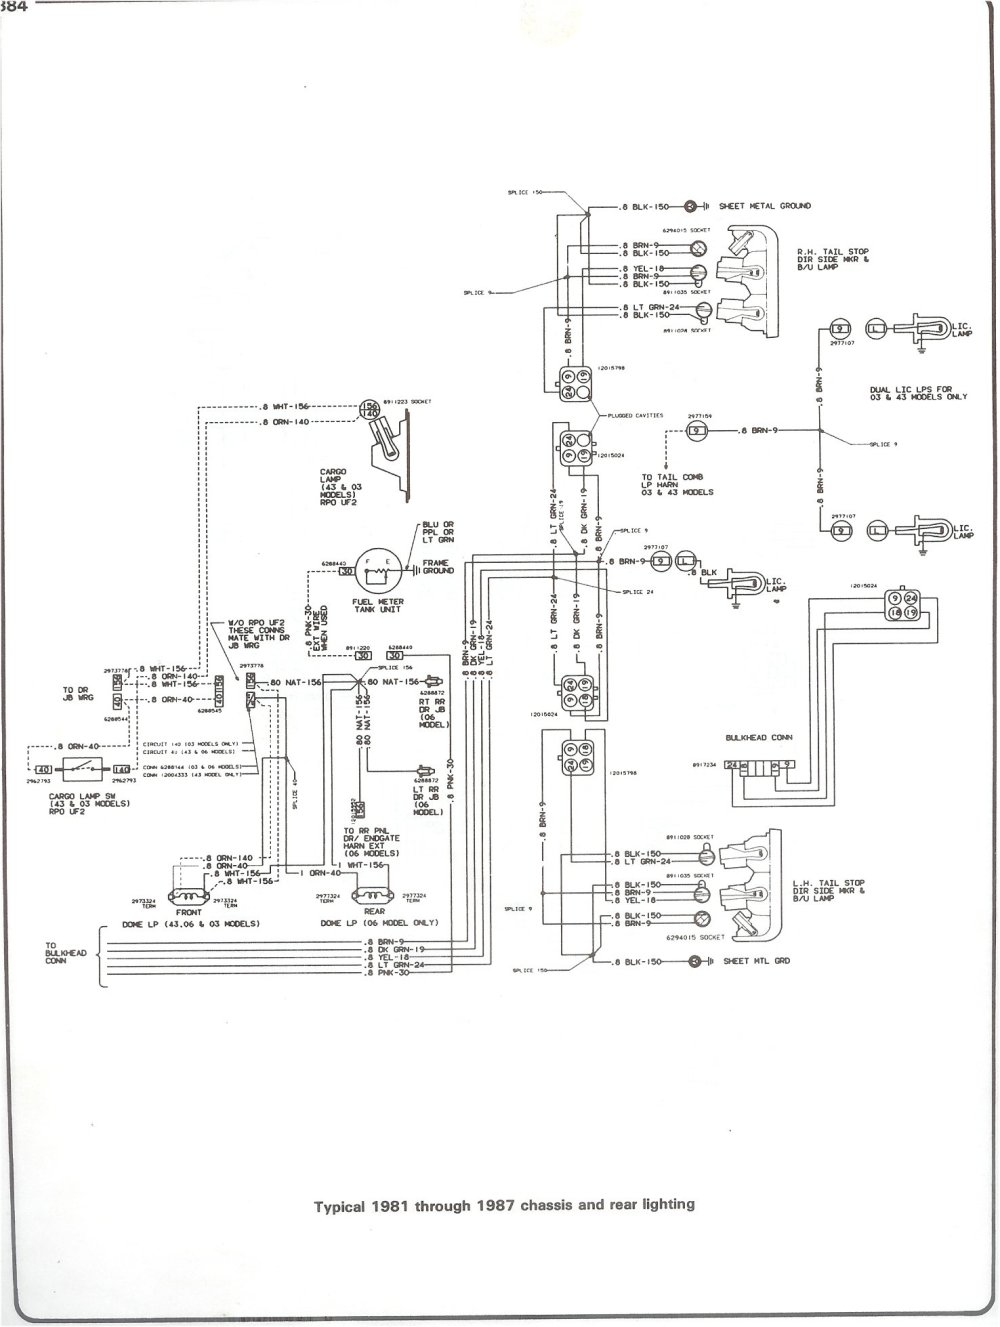 medium resolution of 81 chevy pickup wiring diagram wiring diagram third level 93 chevy truck wiring diagram 82 chevy pickup ac wiring diagram